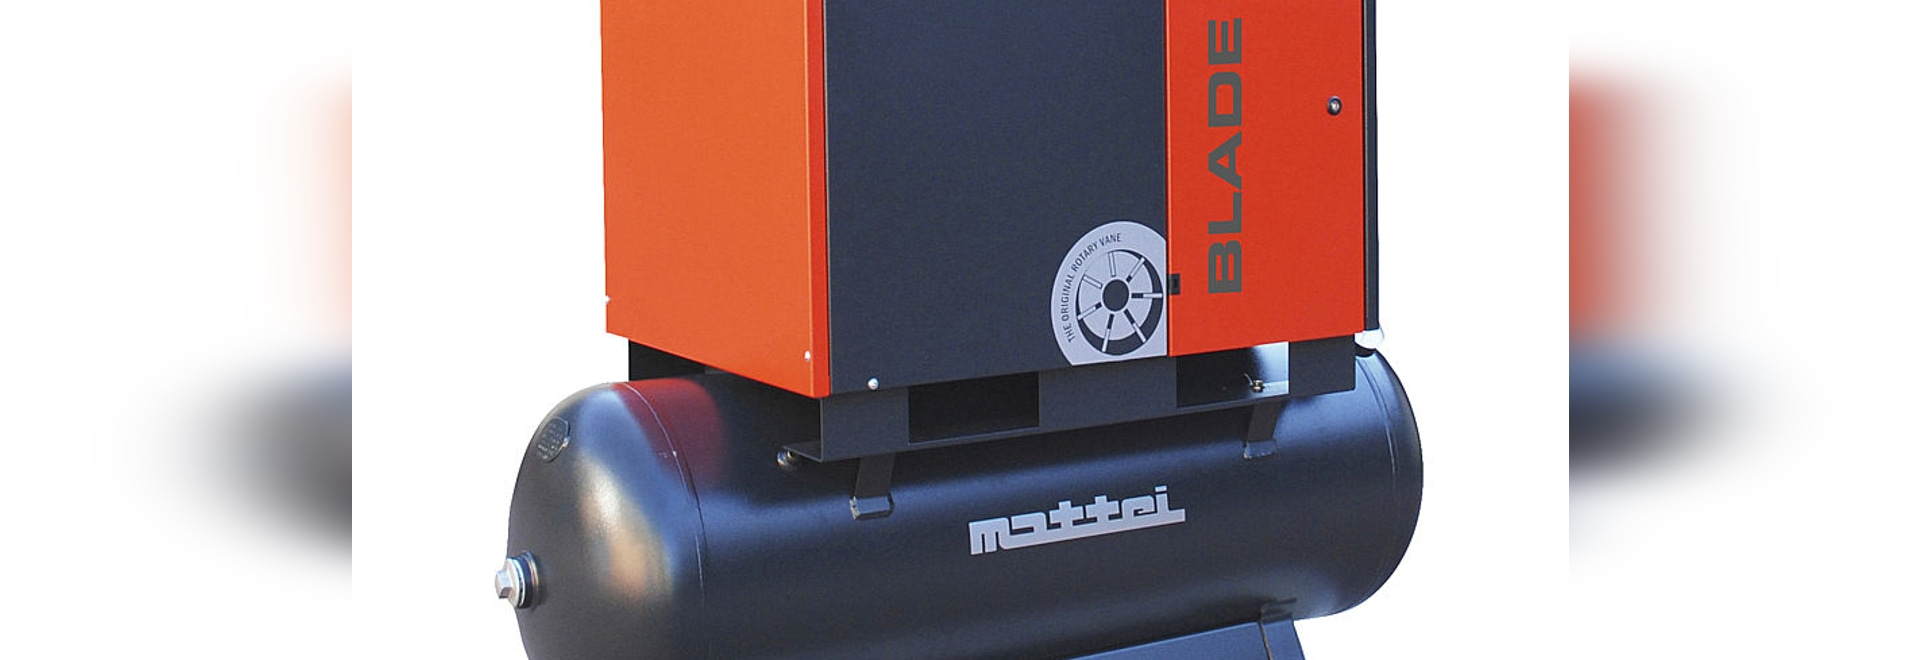 Blade, the compact and efficient compressor for small companies